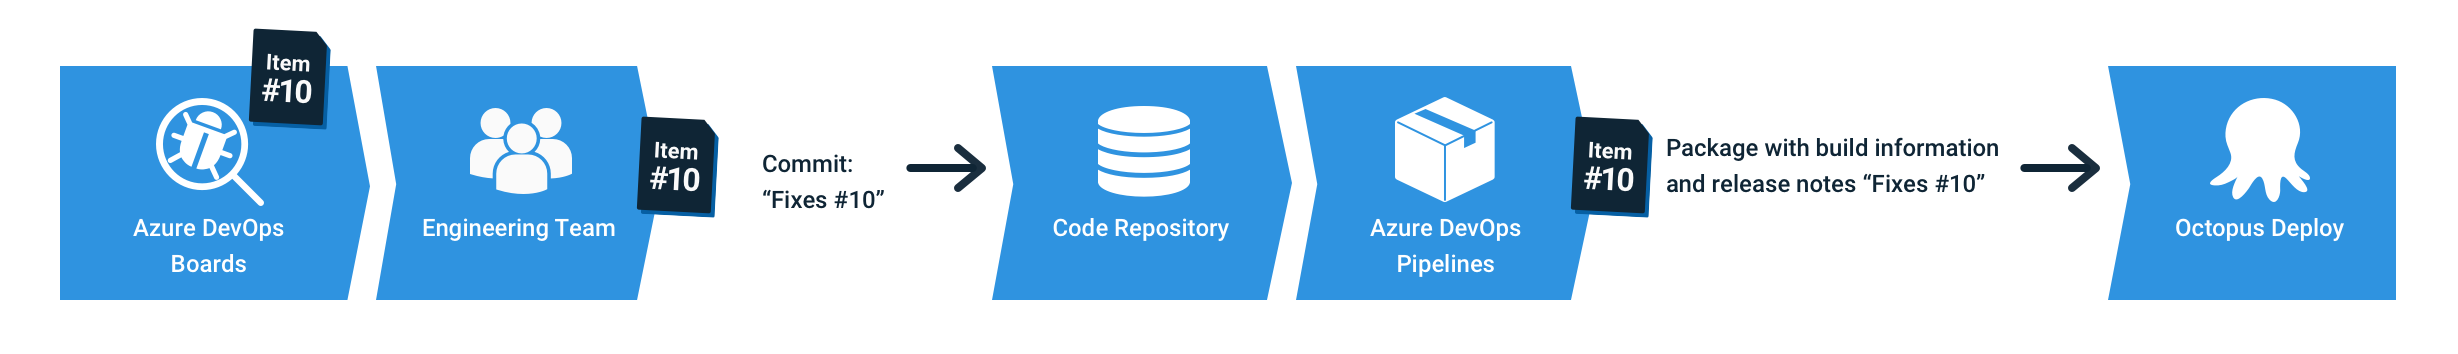 Octopus Azure DevOps integration - how it works diagram